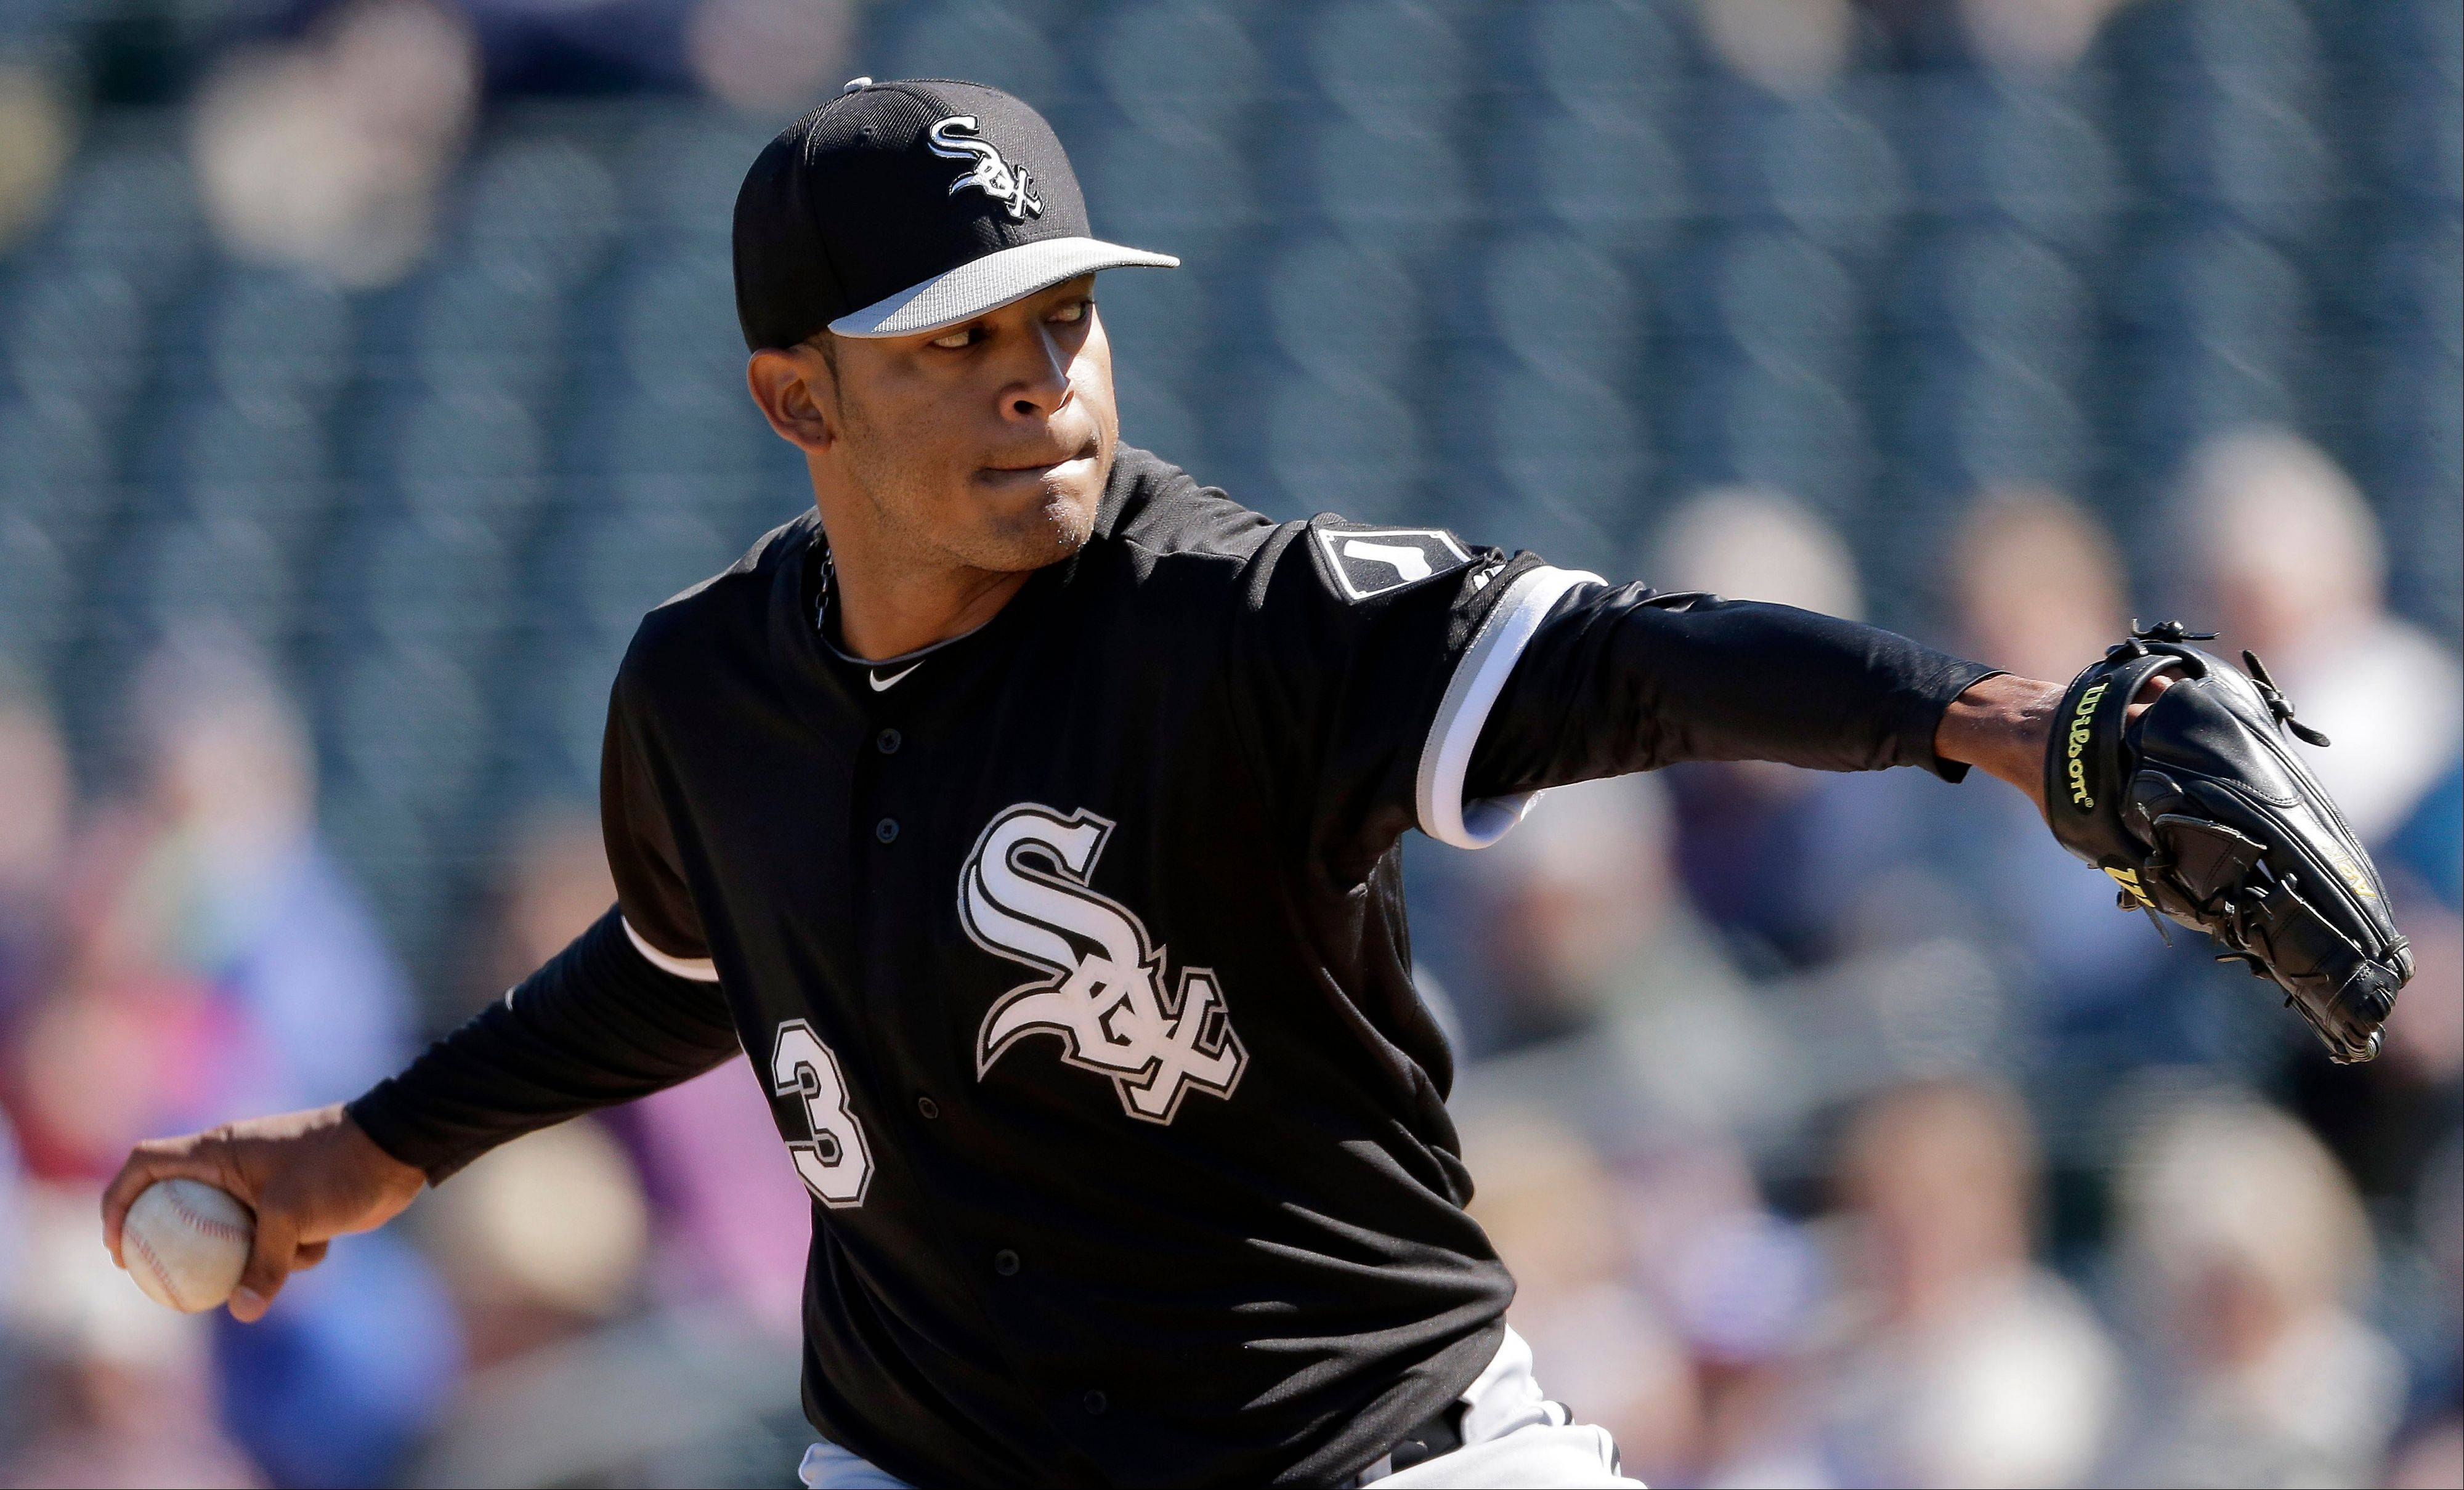 Chicago White Sox starting pitcher Nestor Molina throws during a spring training baseball game against the Texas Rangers on Tuesday, Feb. 26, 2013, in Surprise, Ariz. (AP Photo/Charlie Riedel)